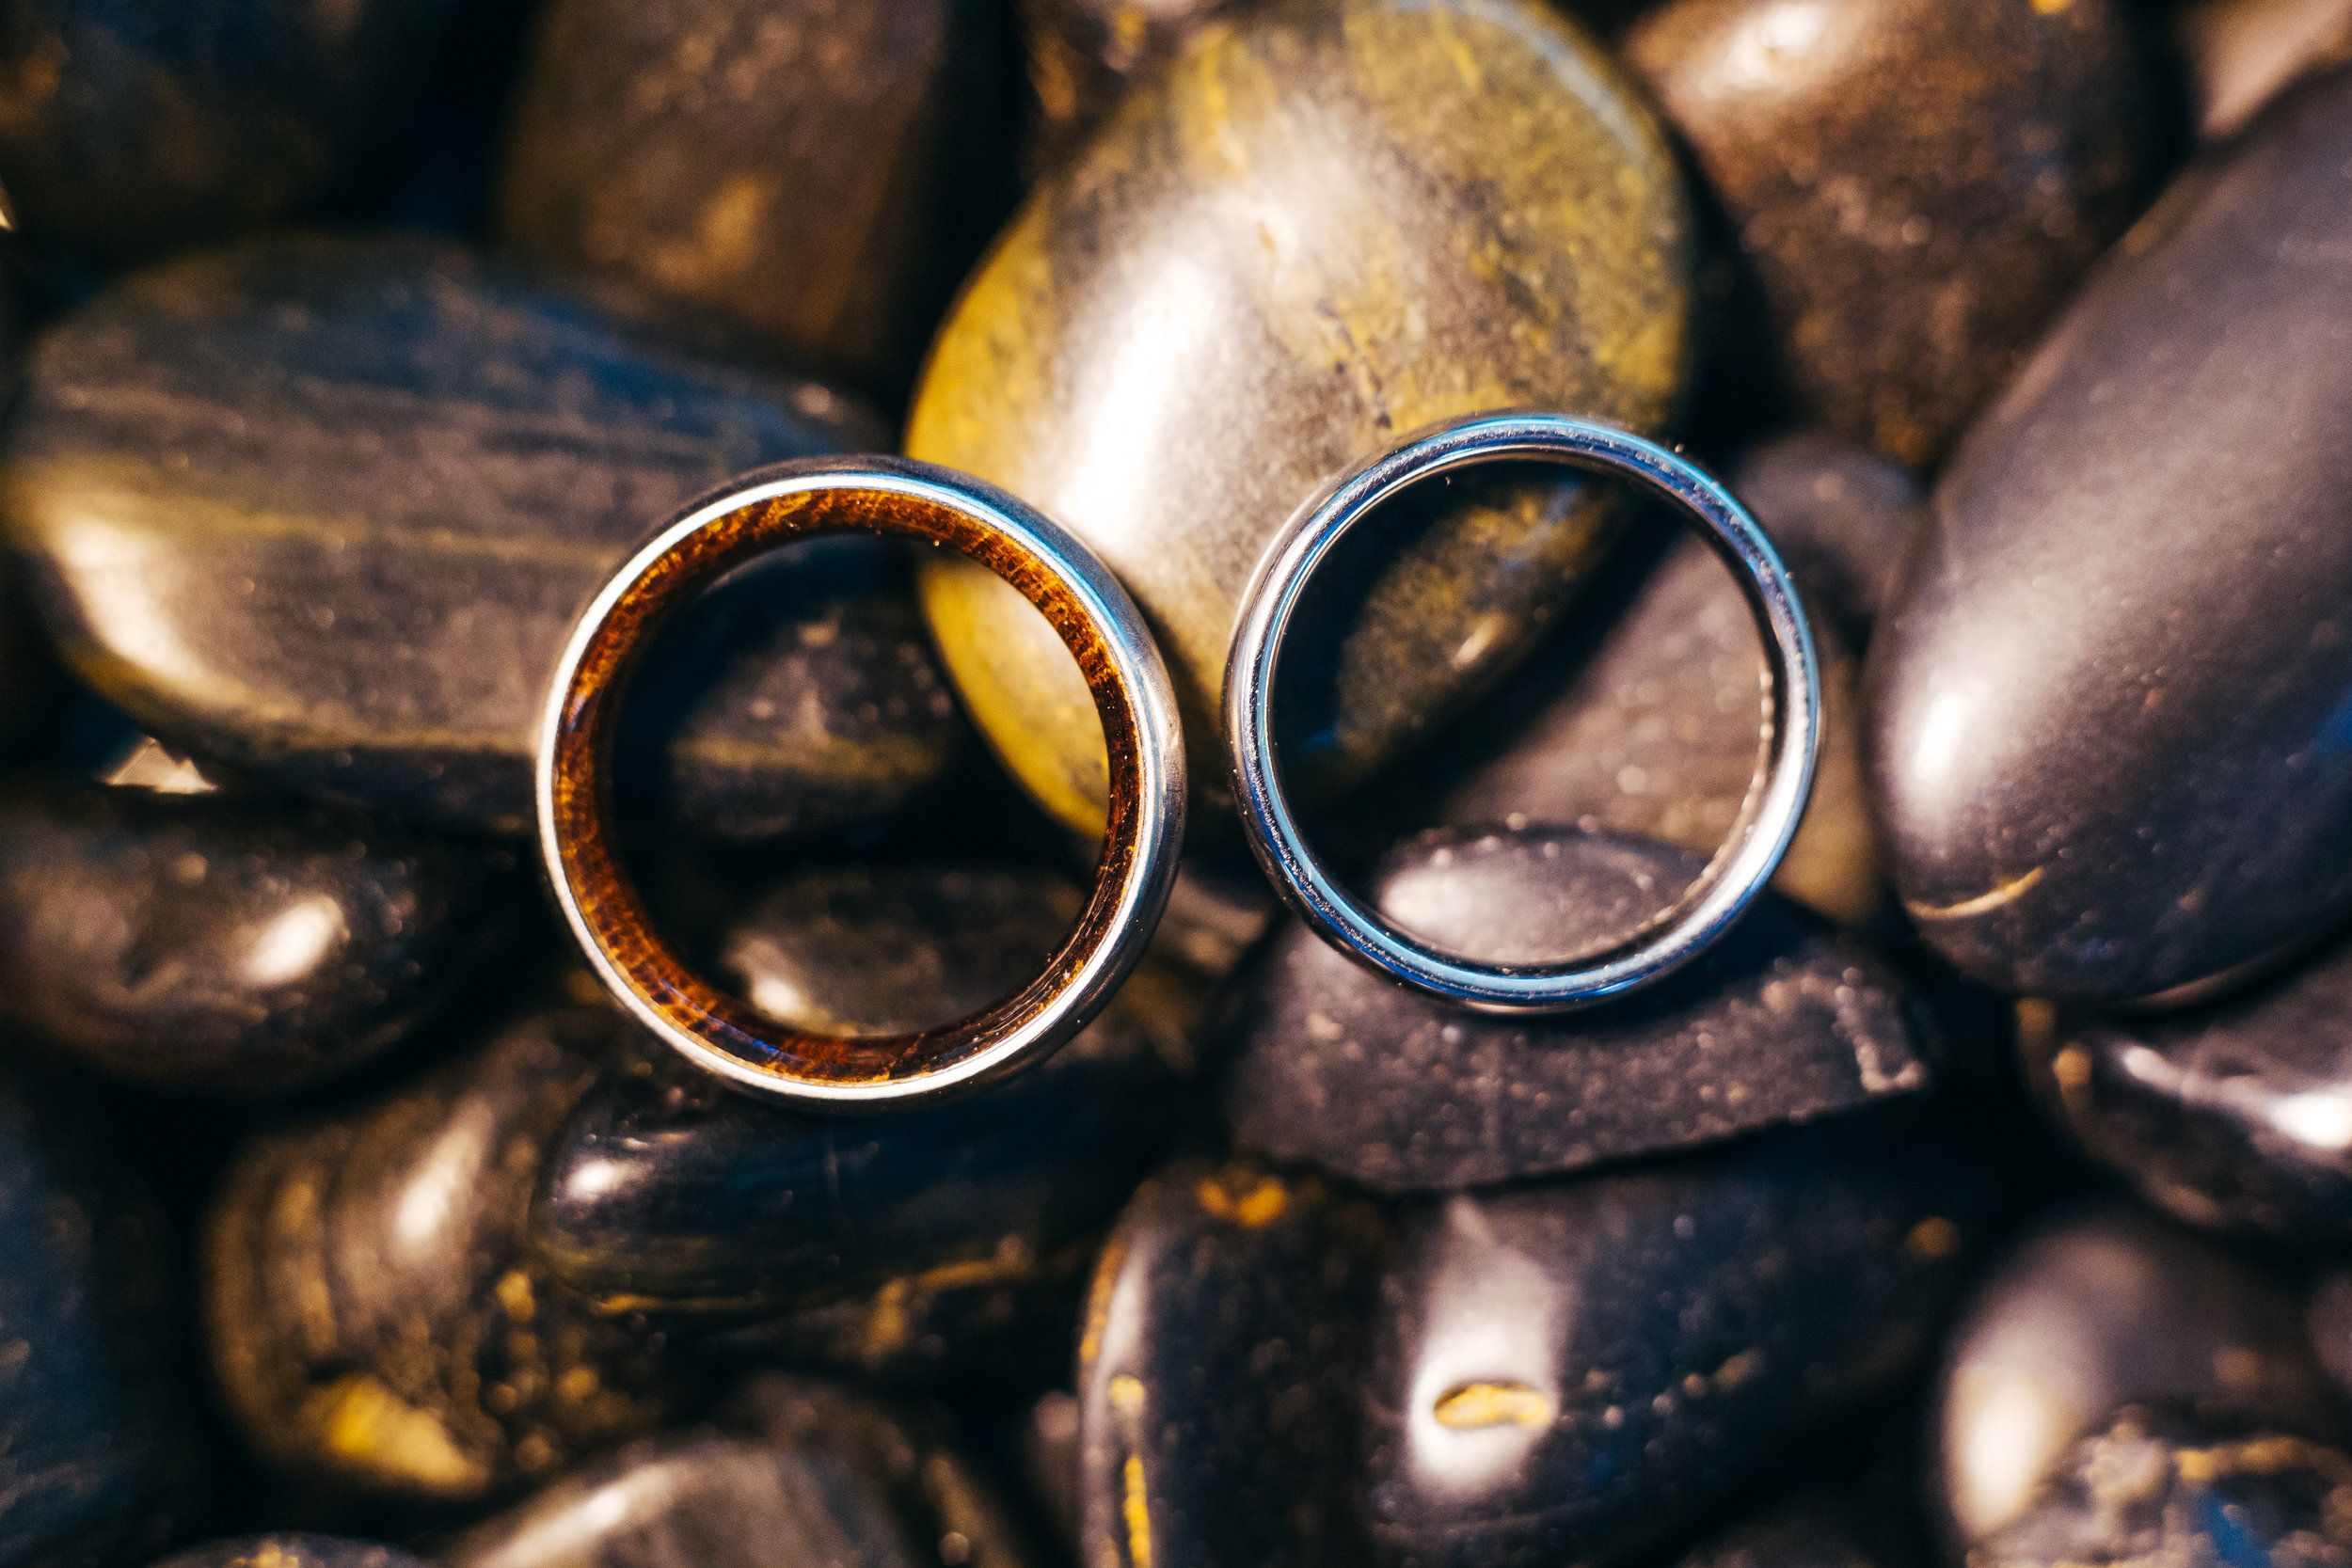 For this photo of Chad and Eddies rings, we wanted to emphasize the natural style of the ring design. There were wood inlays inside the bands, which we thought was absolutely gorgeous. By placing ita gainst some rocks and then lighting it from around the rings, we were able to get the highlights on the rings, and then keep in theme with the natural feel.